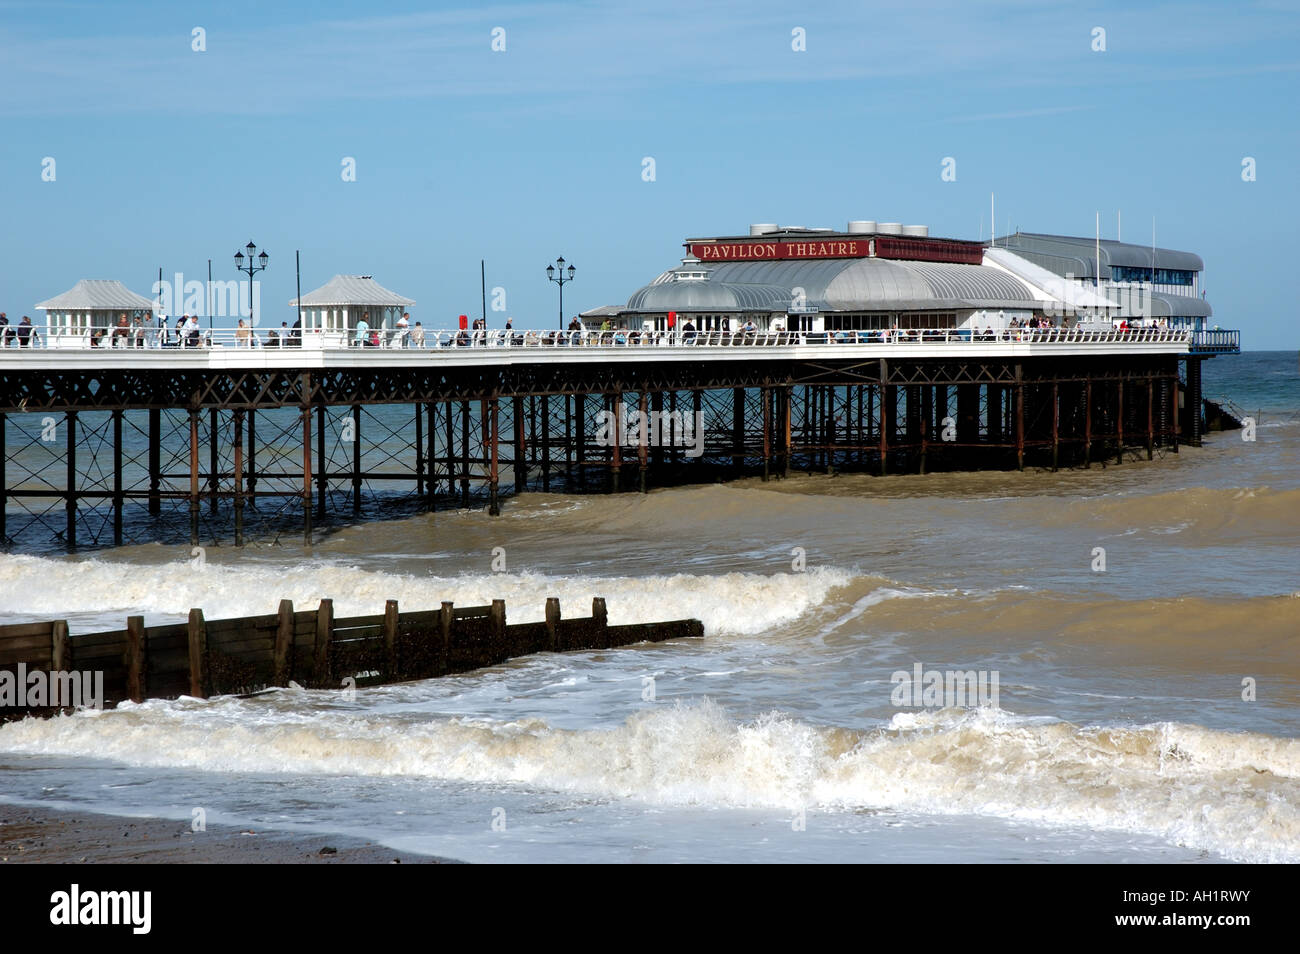 Cromer pier and Pavilion Theatre, home of the famous 'End of the Pier' show, Norfolk, UK - Stock Image